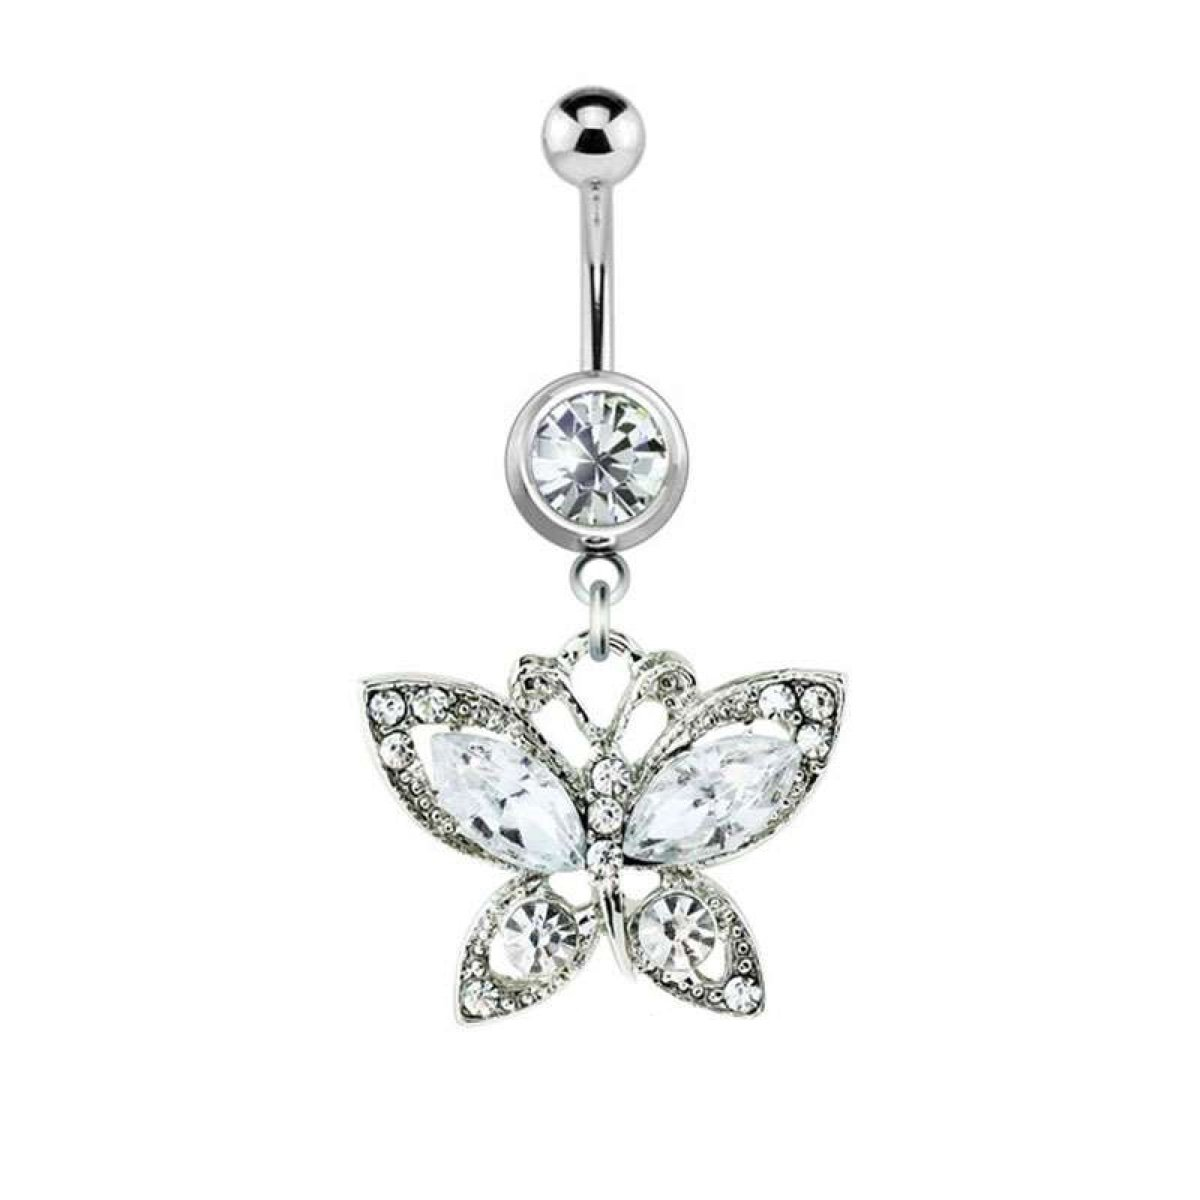 Dynamique 316L Surgical Steel Gem Butterfly Dangle Belly Button Ring by Dynamique